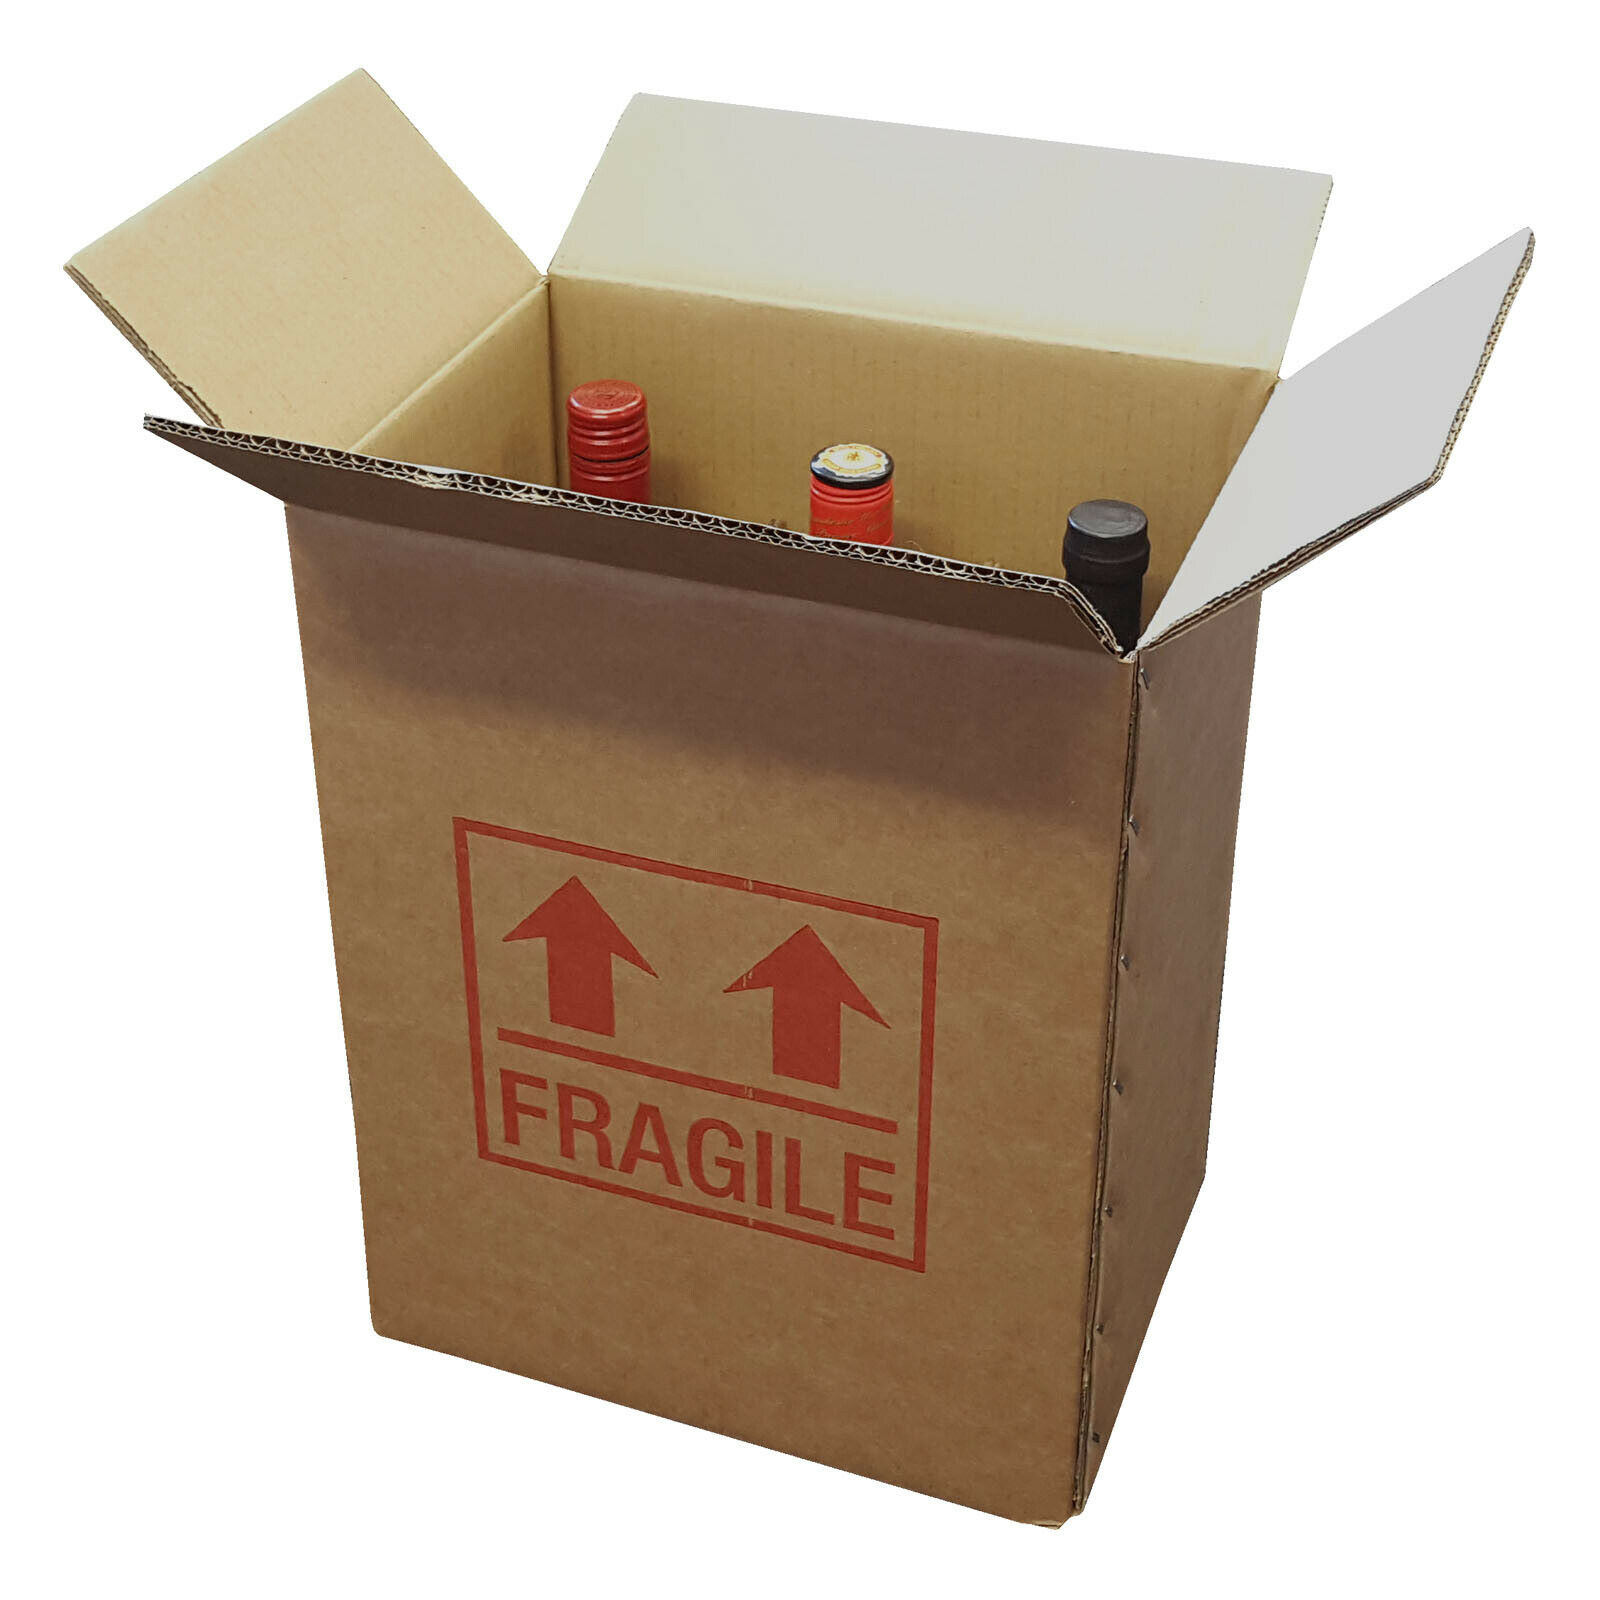 30 Strong Cardboard 6 Bottle Wine Boxes 275mm x 190mm x 335mm Printed Fragile 163603397026 - 30 Strong Cardboard 6 Bottle Wine Boxes 275mm x 190mm x 335mm Printed Fragile